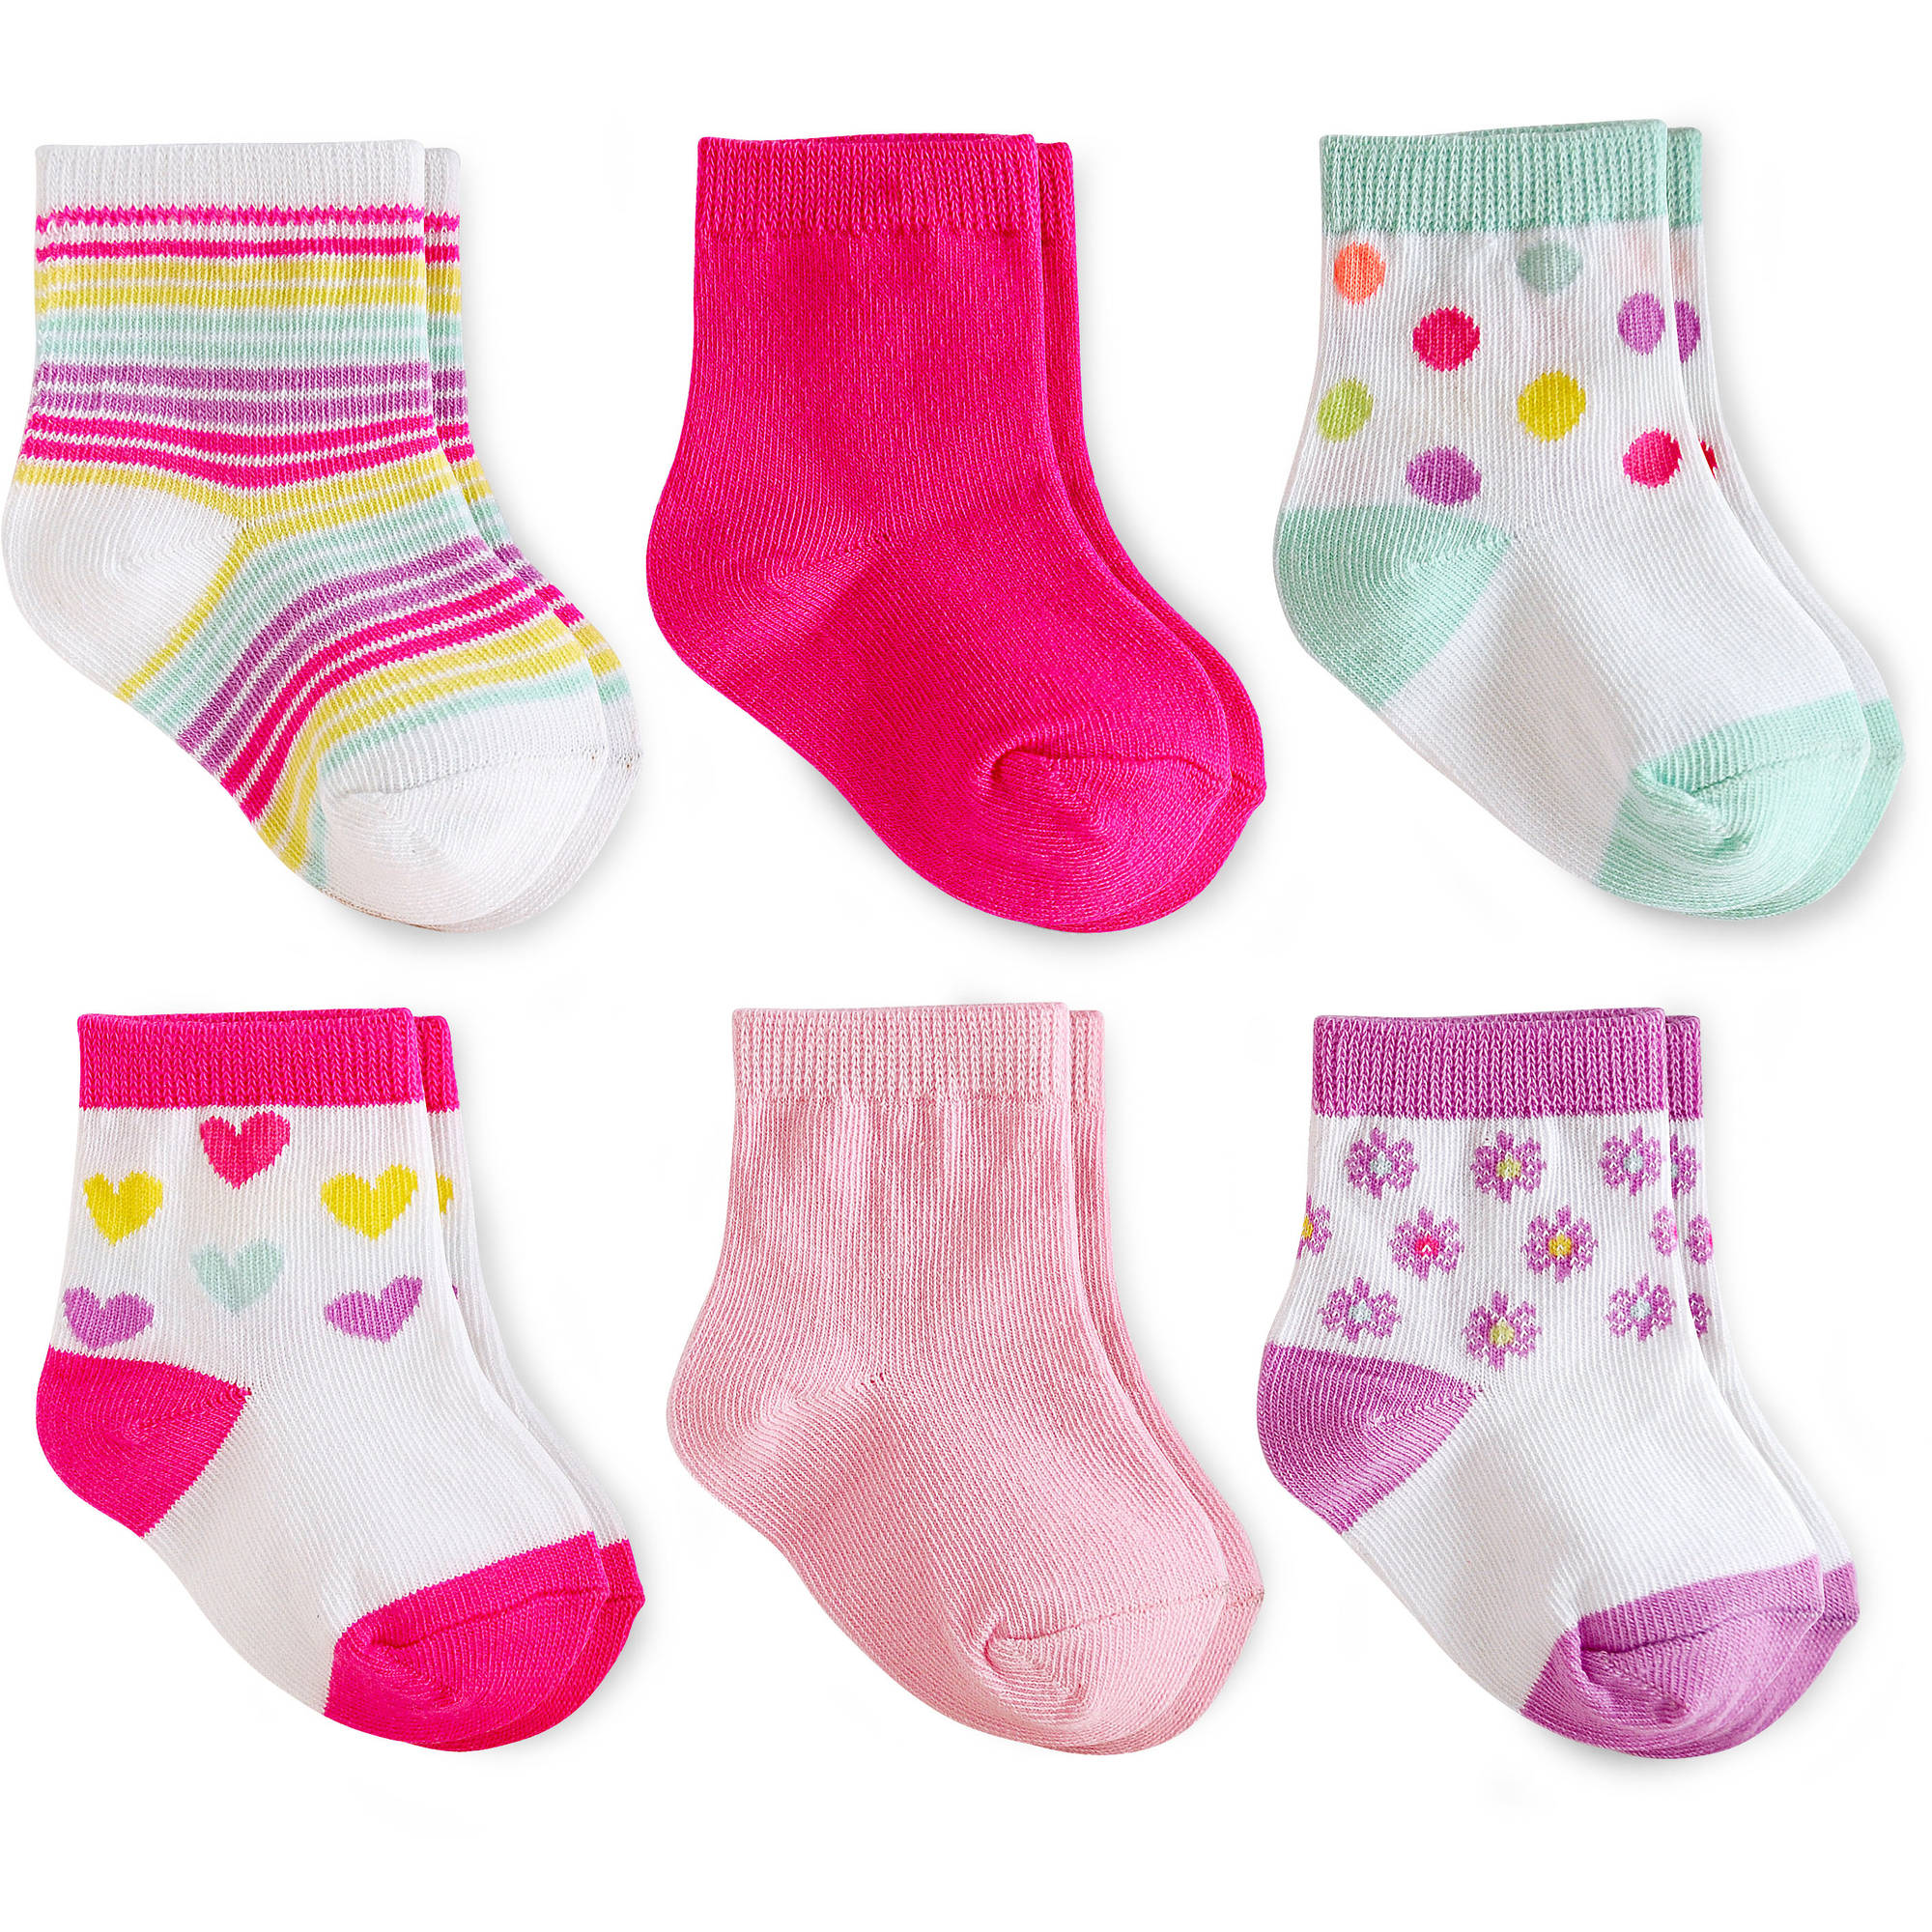 Baby Socks 6 Pack Newest and Cutest Baby Clothing Collection by